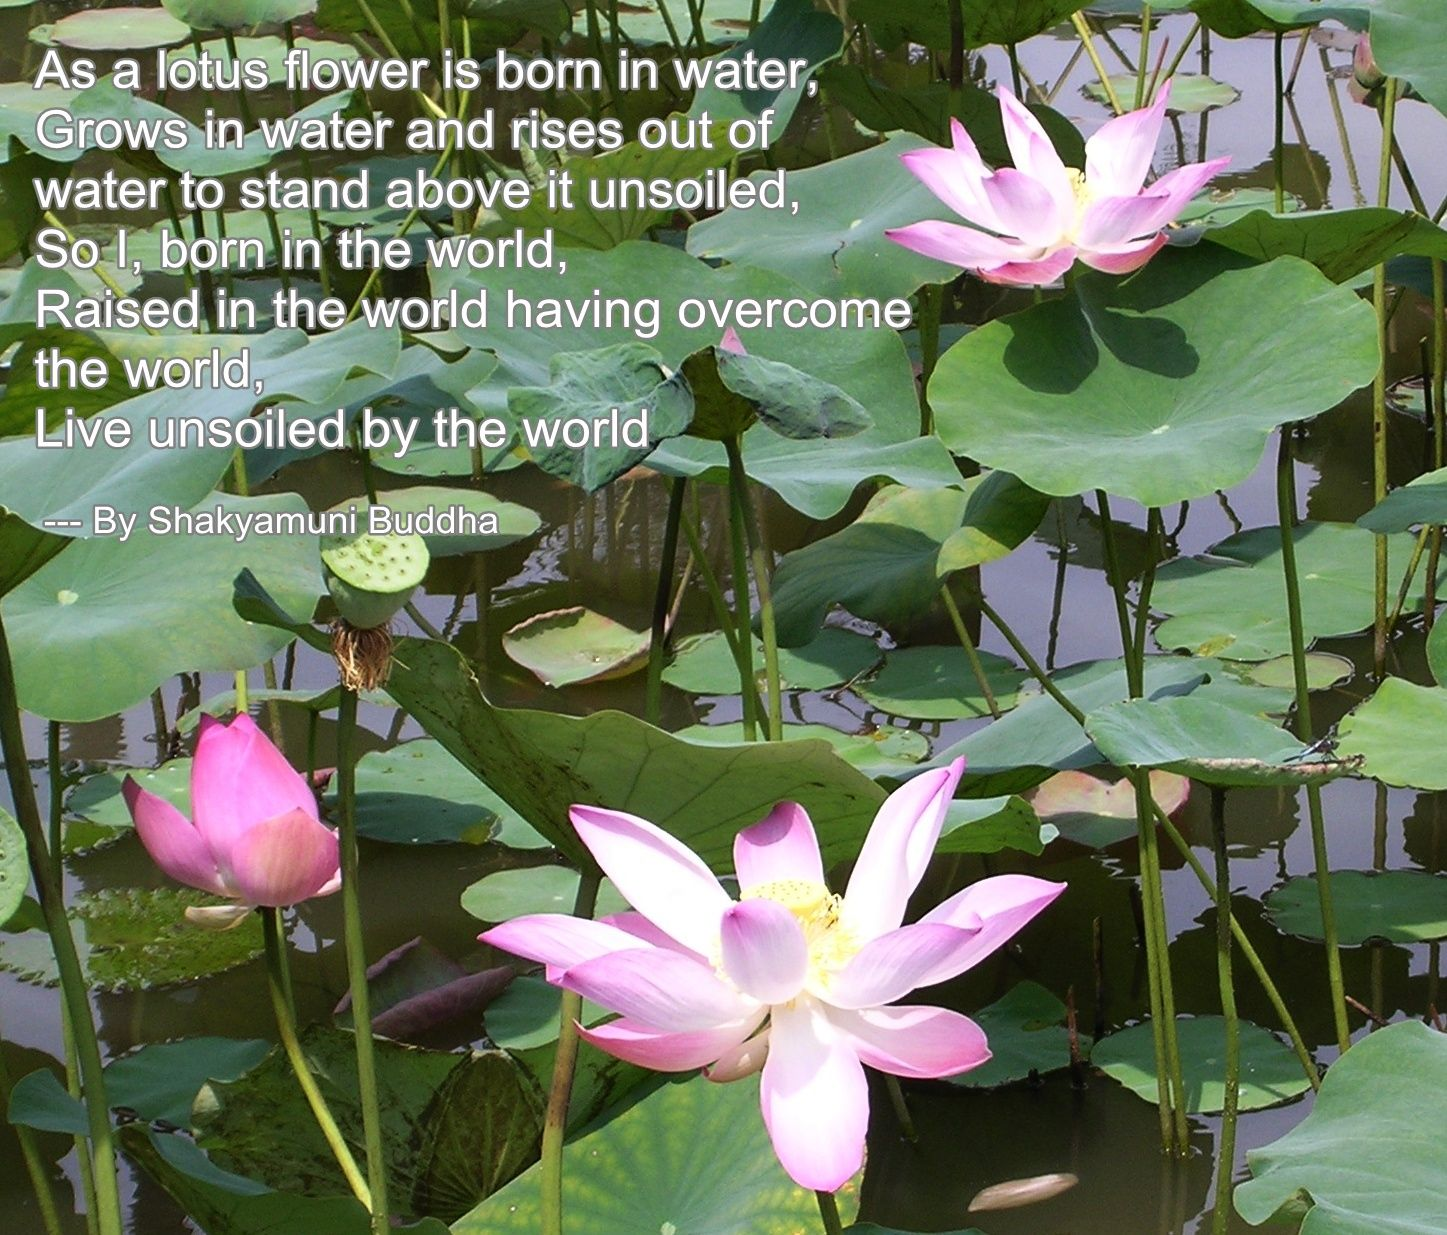 Lotus flower buddha quote album on quotesvil quotes lotus flower buddha quote album on quotesvil mightylinksfo Image collections